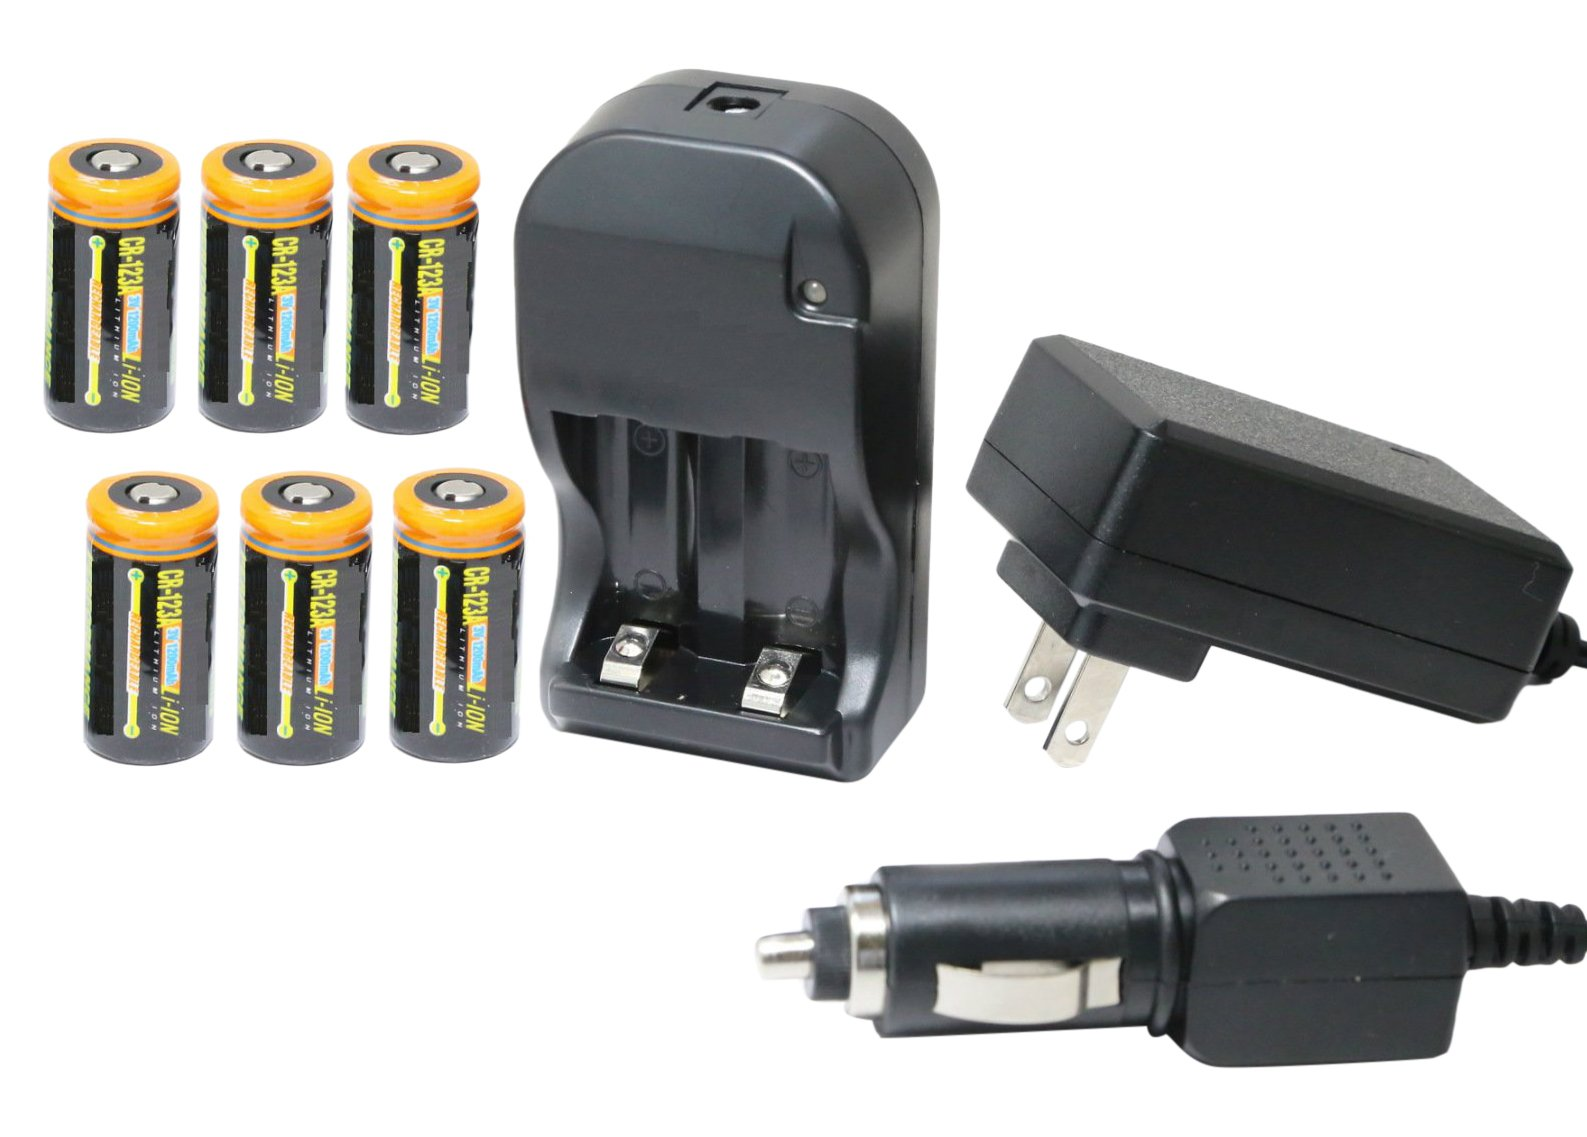 Ultimate Arms Gear UAG-30940 Tactical CR123A 3V 1200 mAh Lithium Li-Ion Rechargeable Batteries, 6 Piece